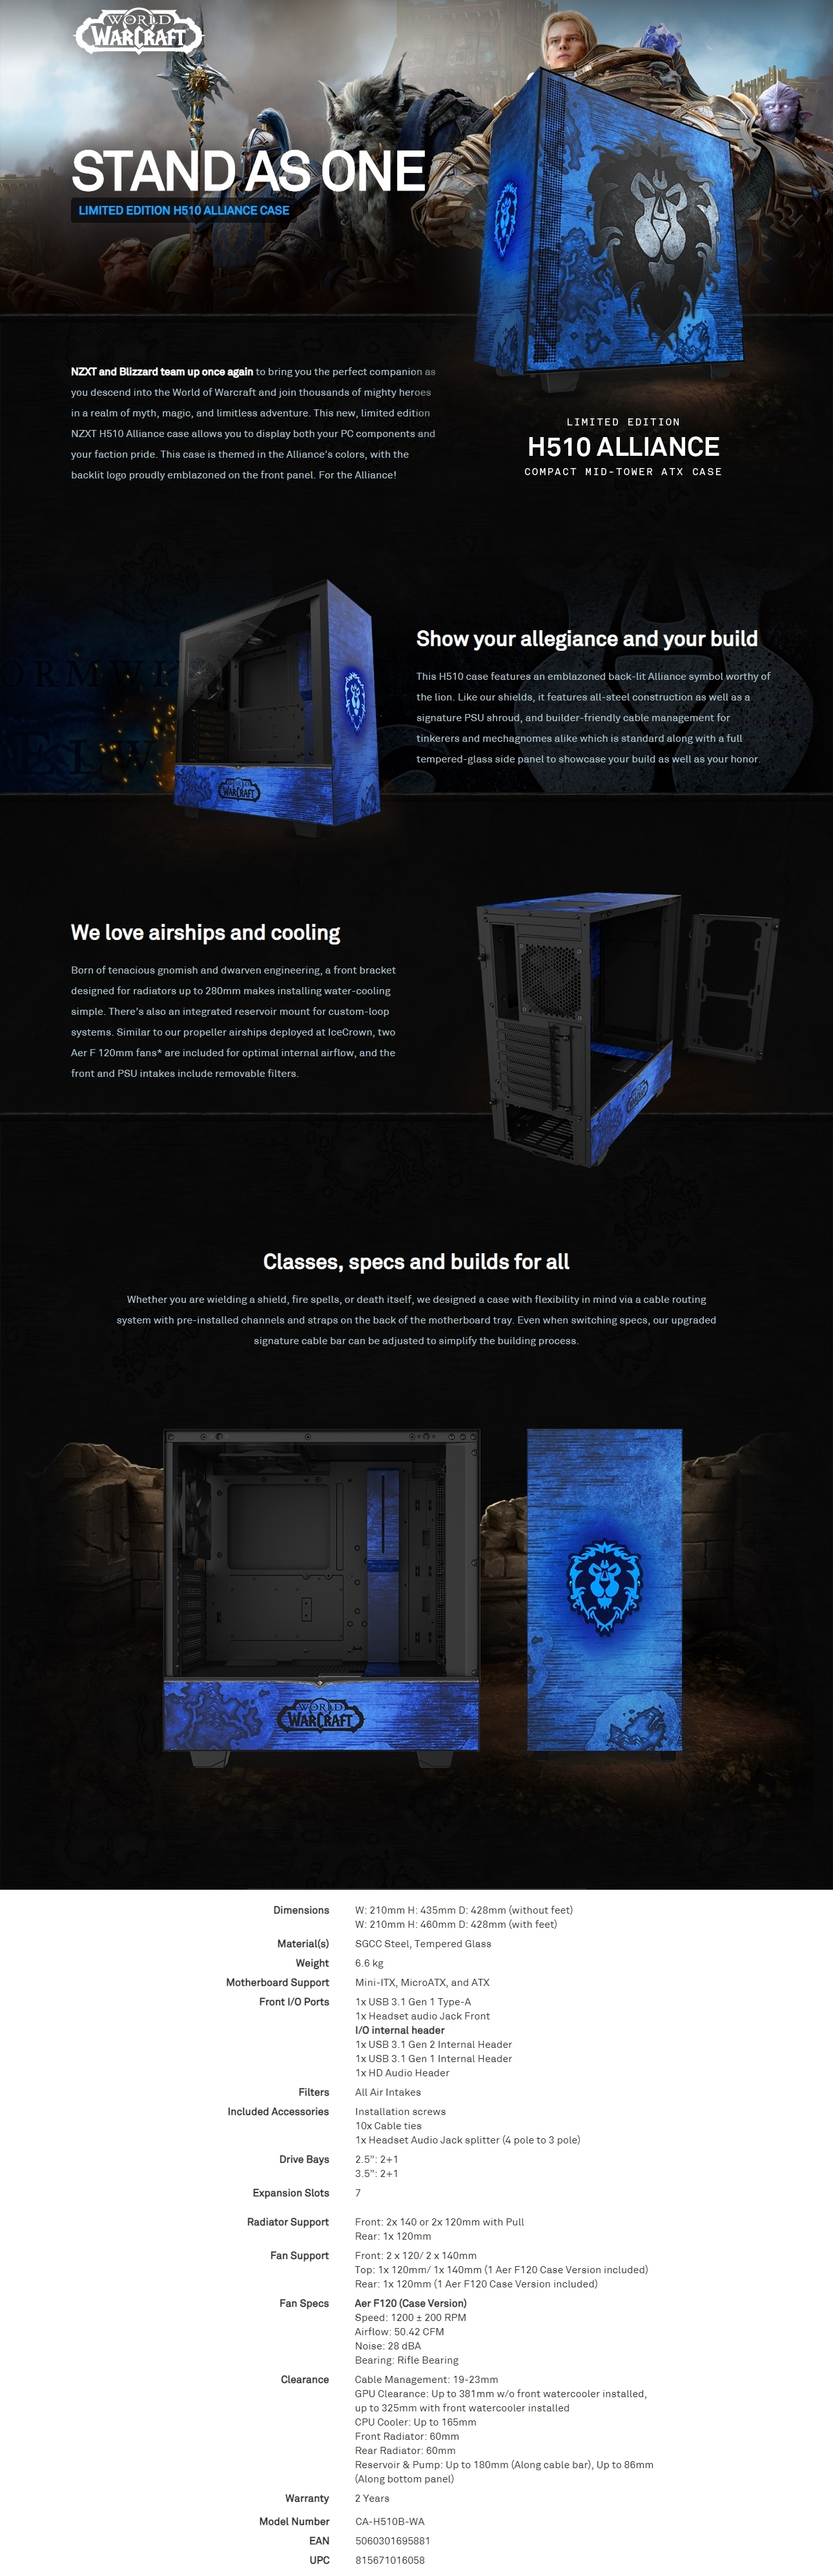 A large marketing image providing additional information about the product NZXT H510 World Of Warcraft Alliance Limited Edition Mid Tower Case - Additional alt info not provided